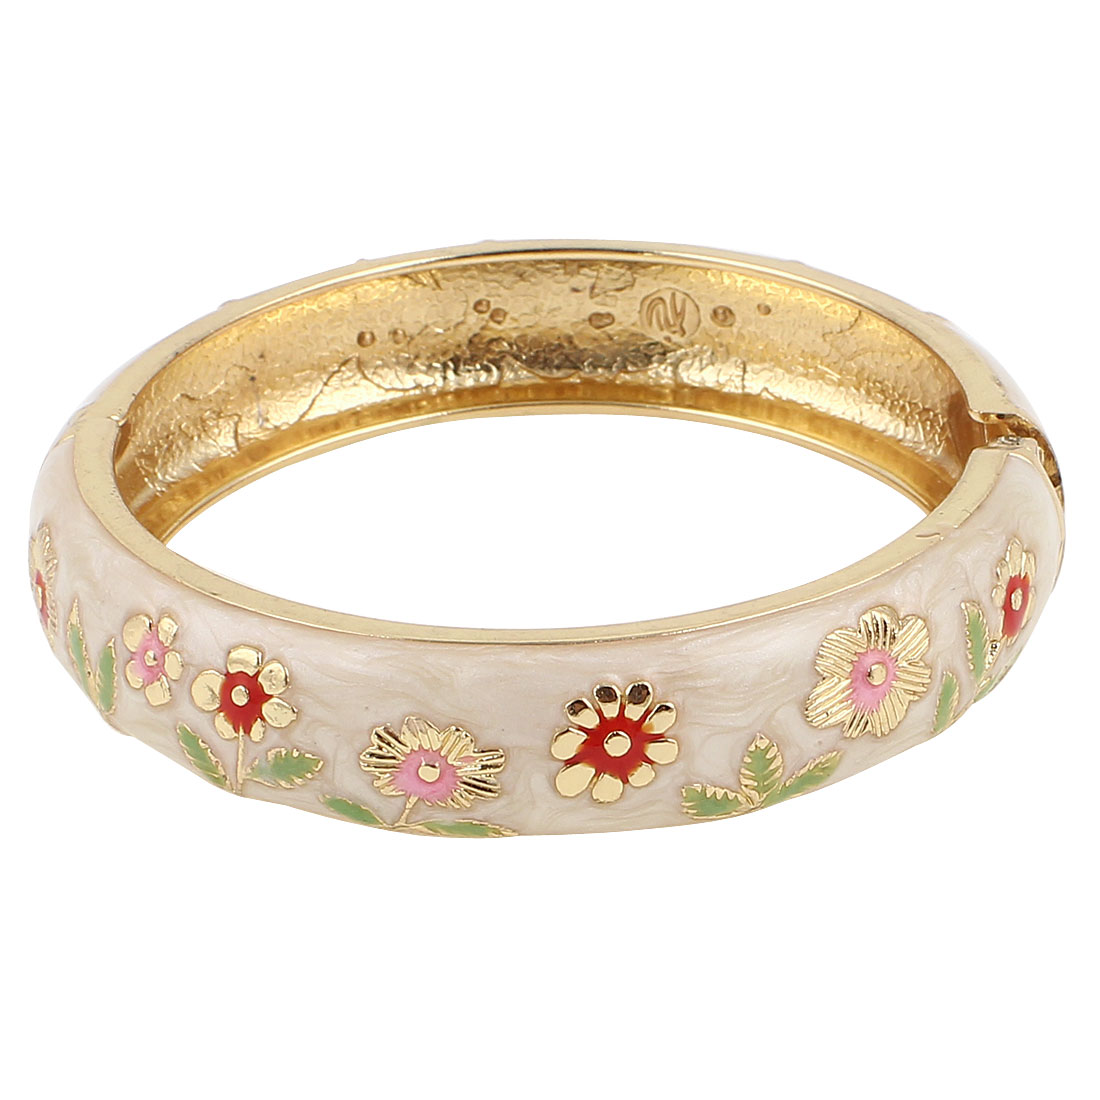 "Lady Girl 2.8"" Dia Round Shape Beige Hinged Wrist Enamel Bracelet Bangle"